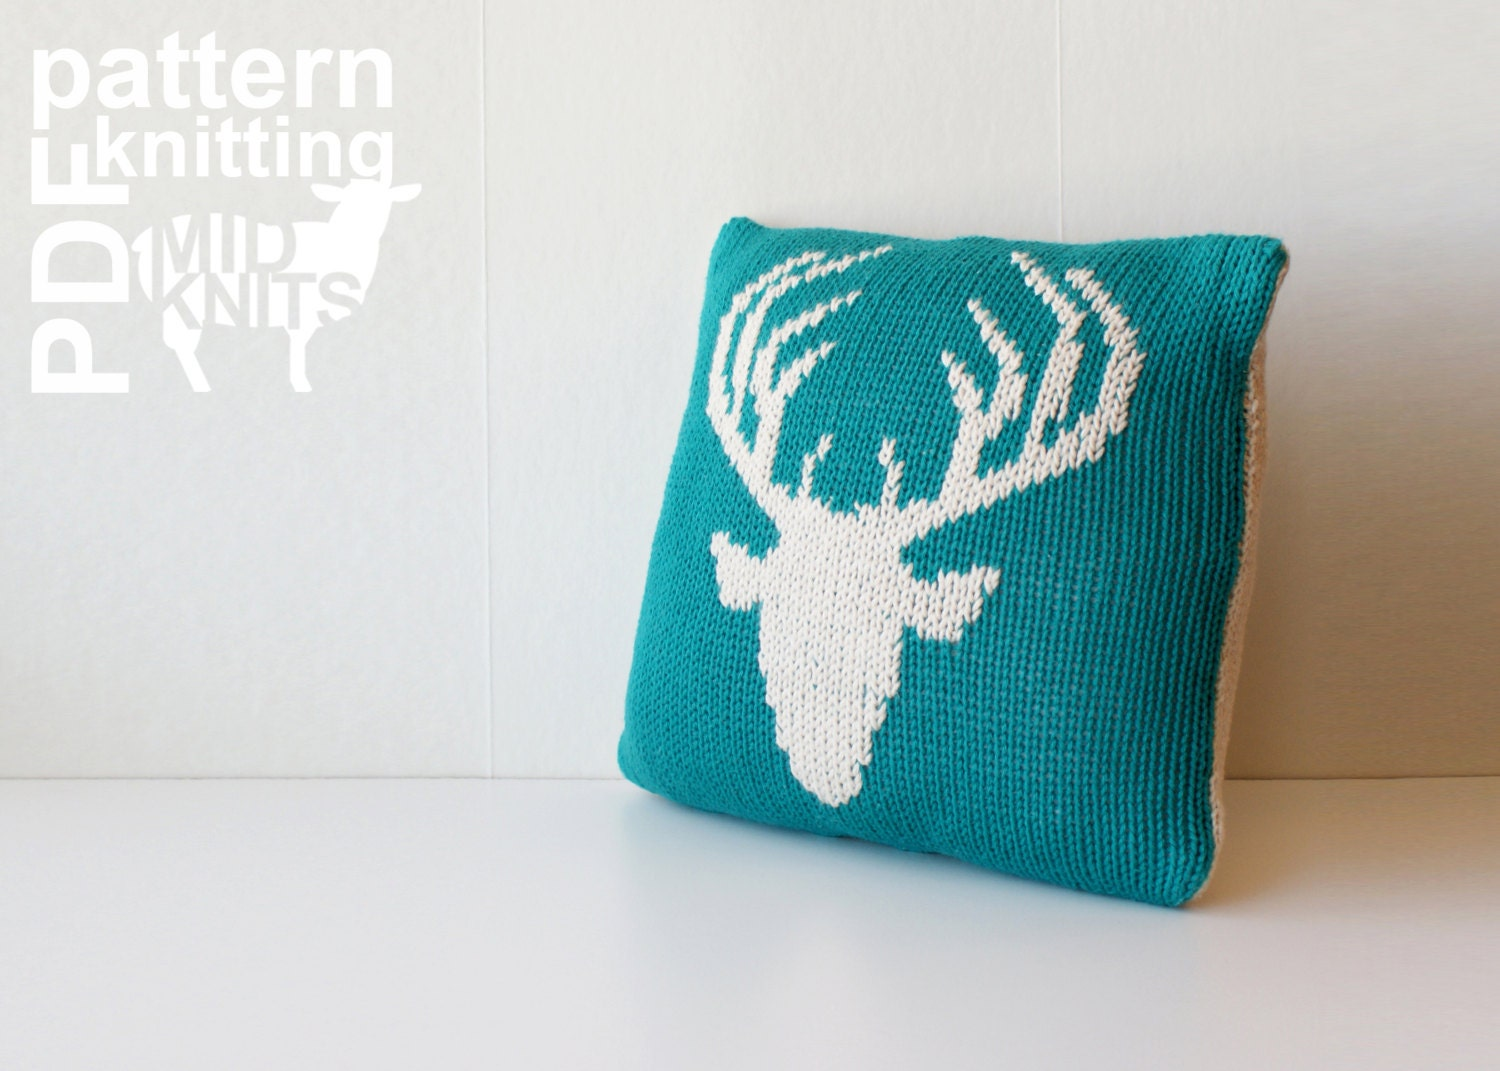 DIY Knitting PATTERN - Stag Head Stockinette Throw Pillow - 12